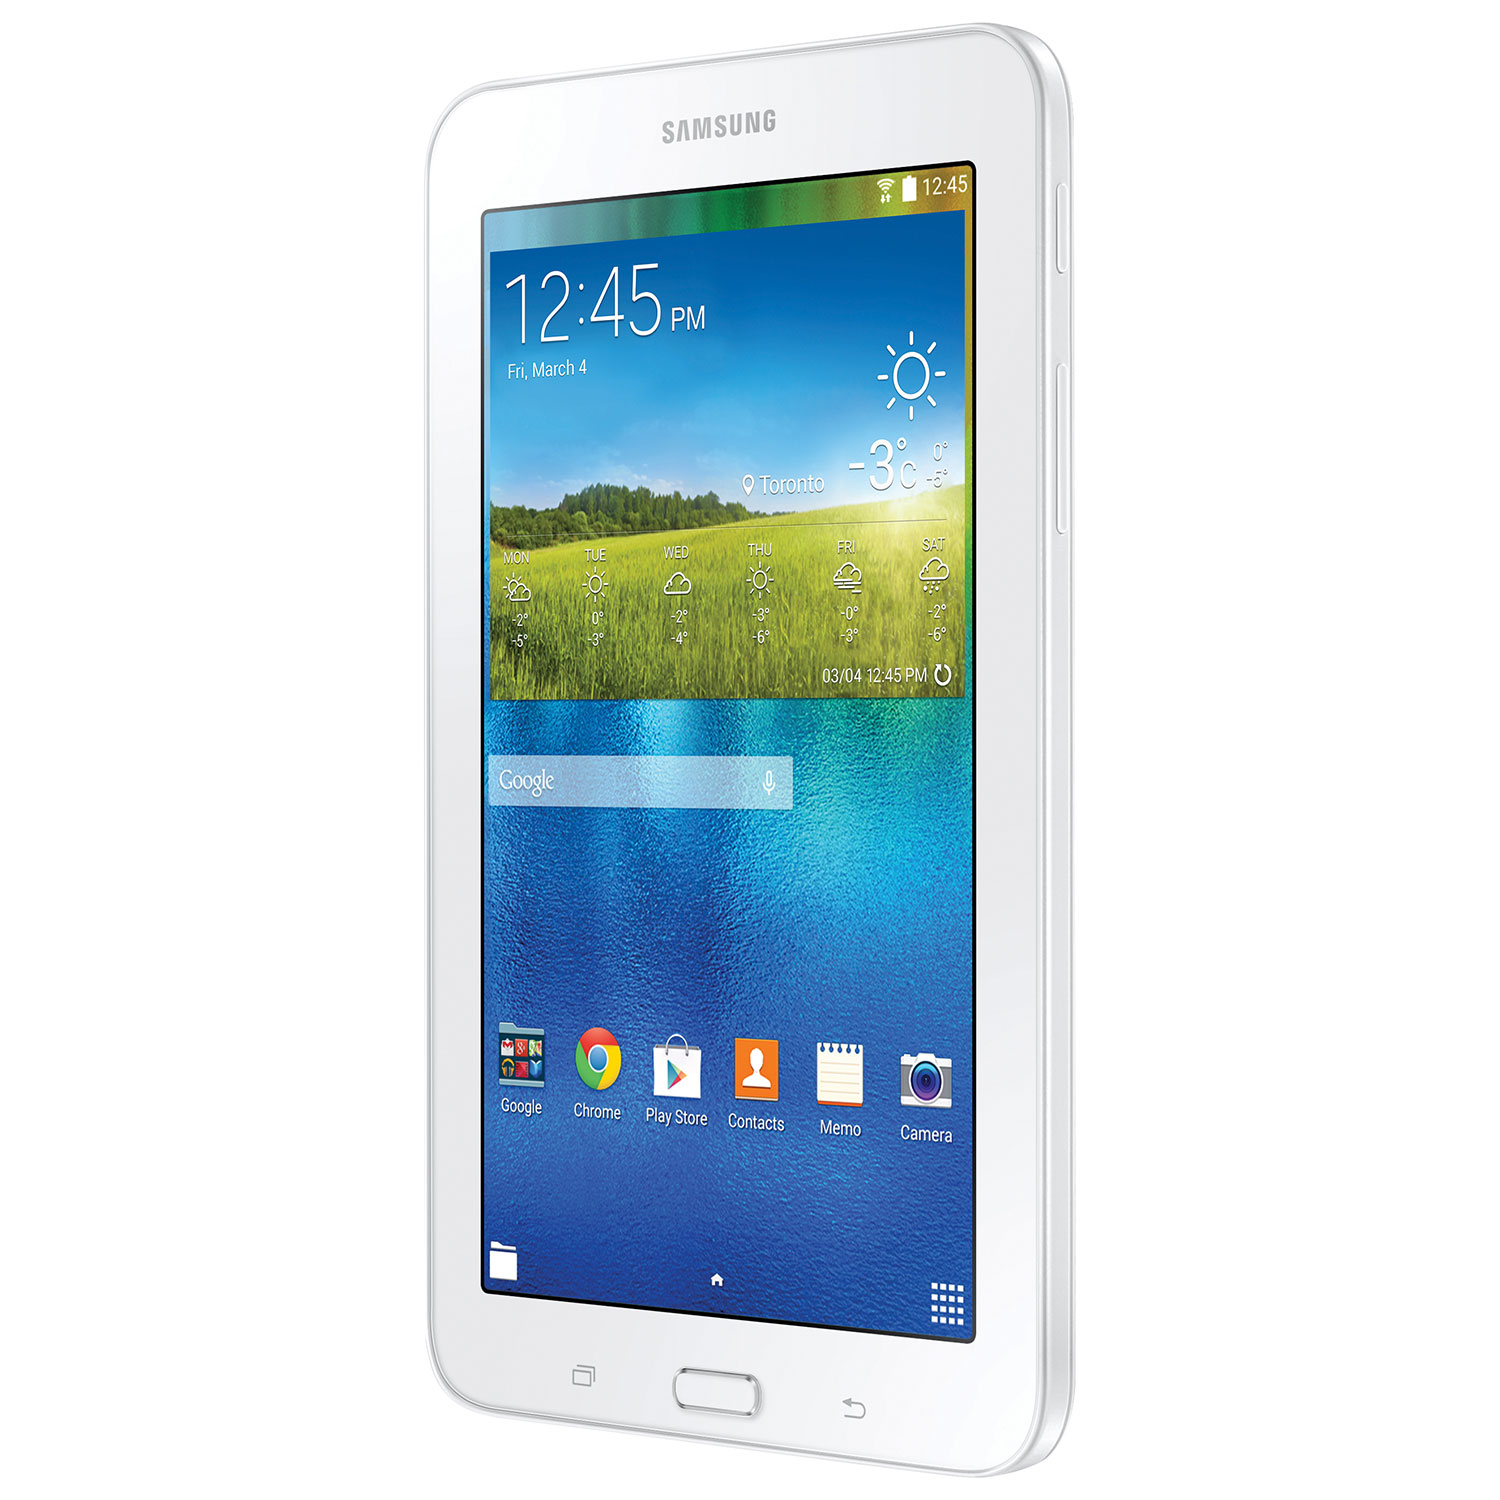 samsung galaxy tab lite android tablet with spreadtrum tablette accent prix shark quad core processor white tablets best trendy outdoor furniture marble top lamp table gold side